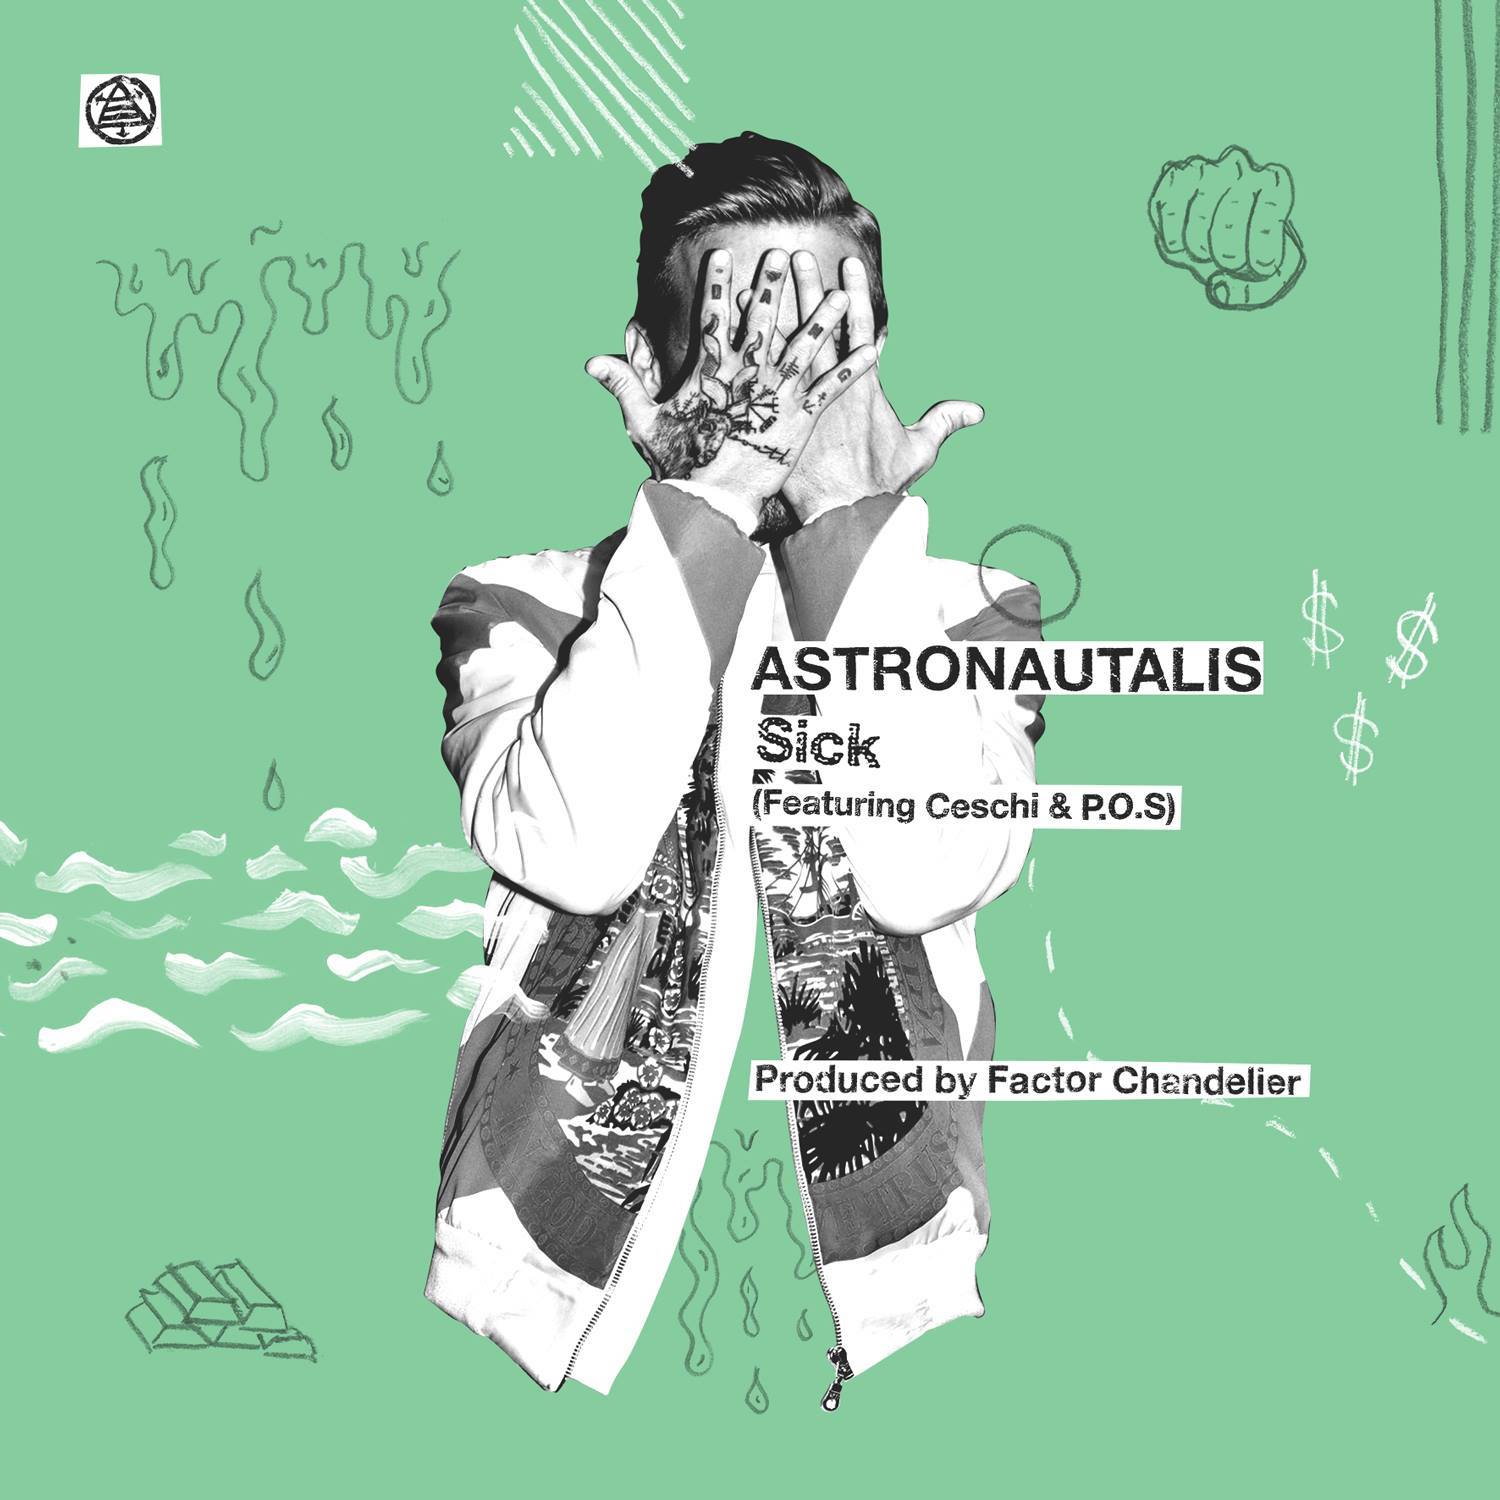 astronautalis sick pos Astronautalis and P.O.S. reunite on new song Sick    listen